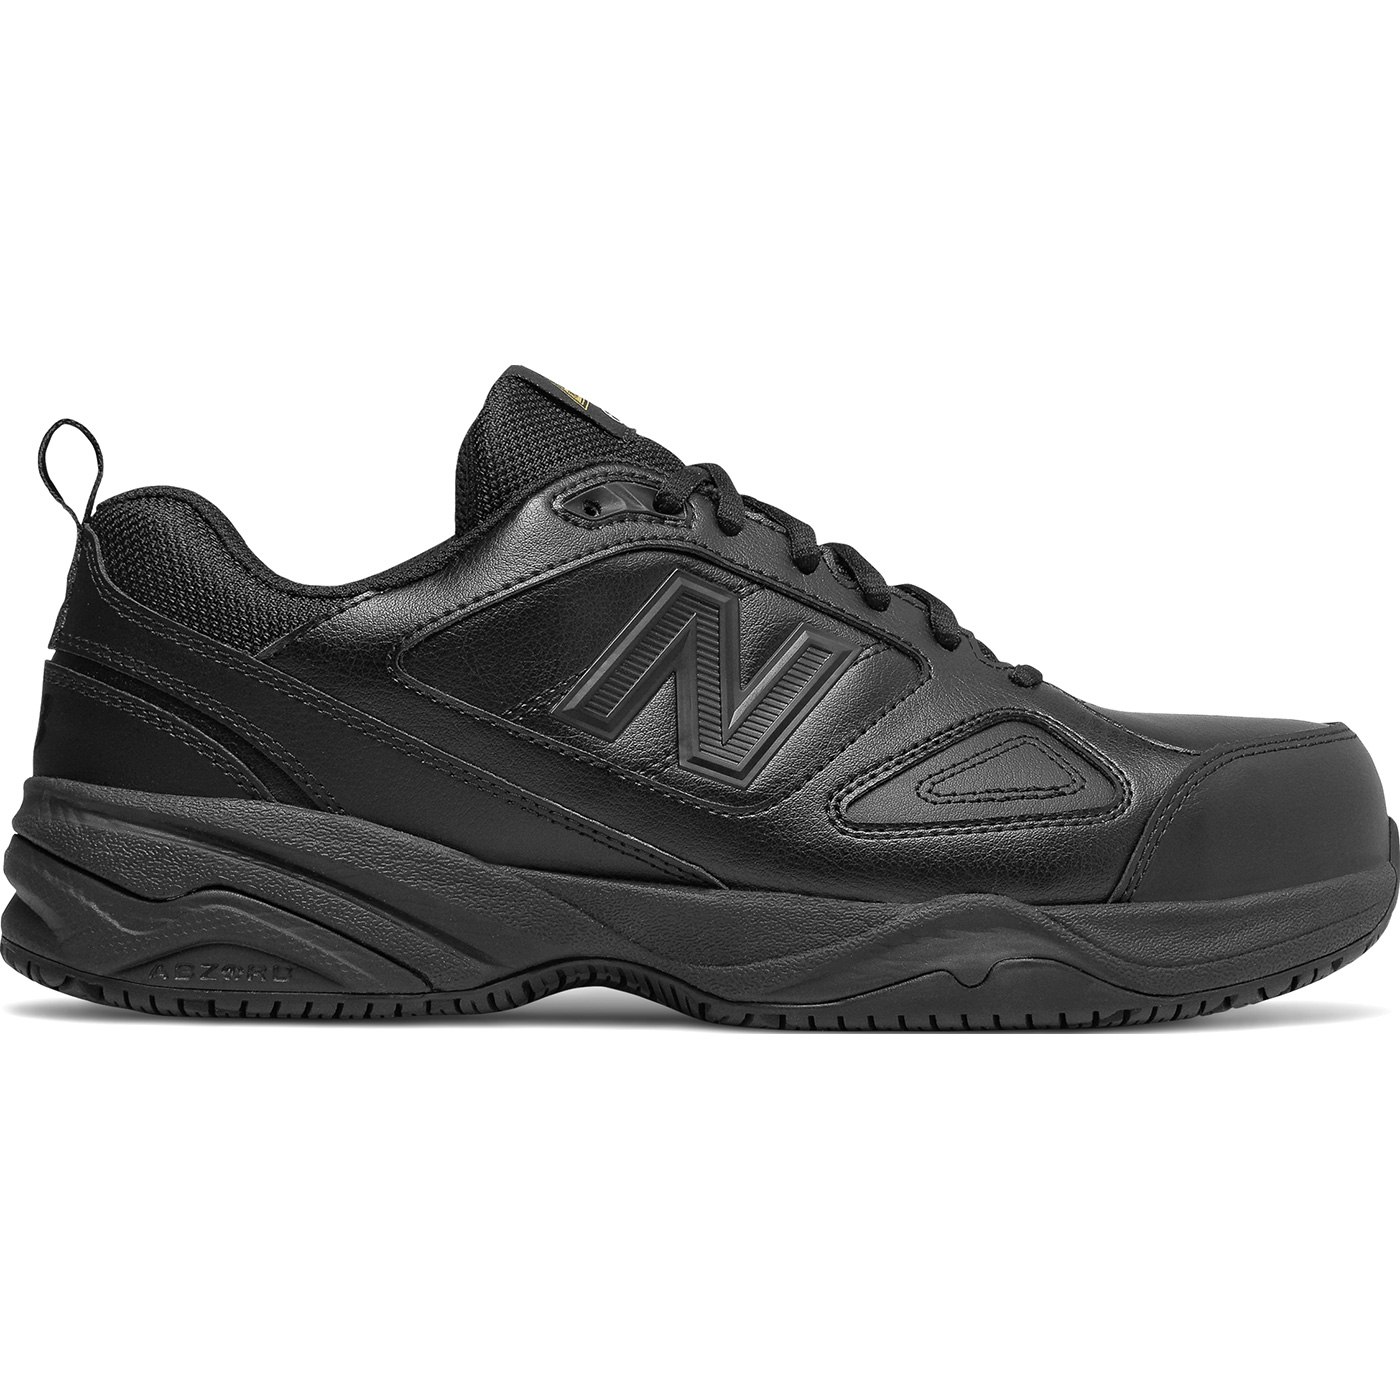 New Mens Leather Running Shoes New Balance Of High Quality